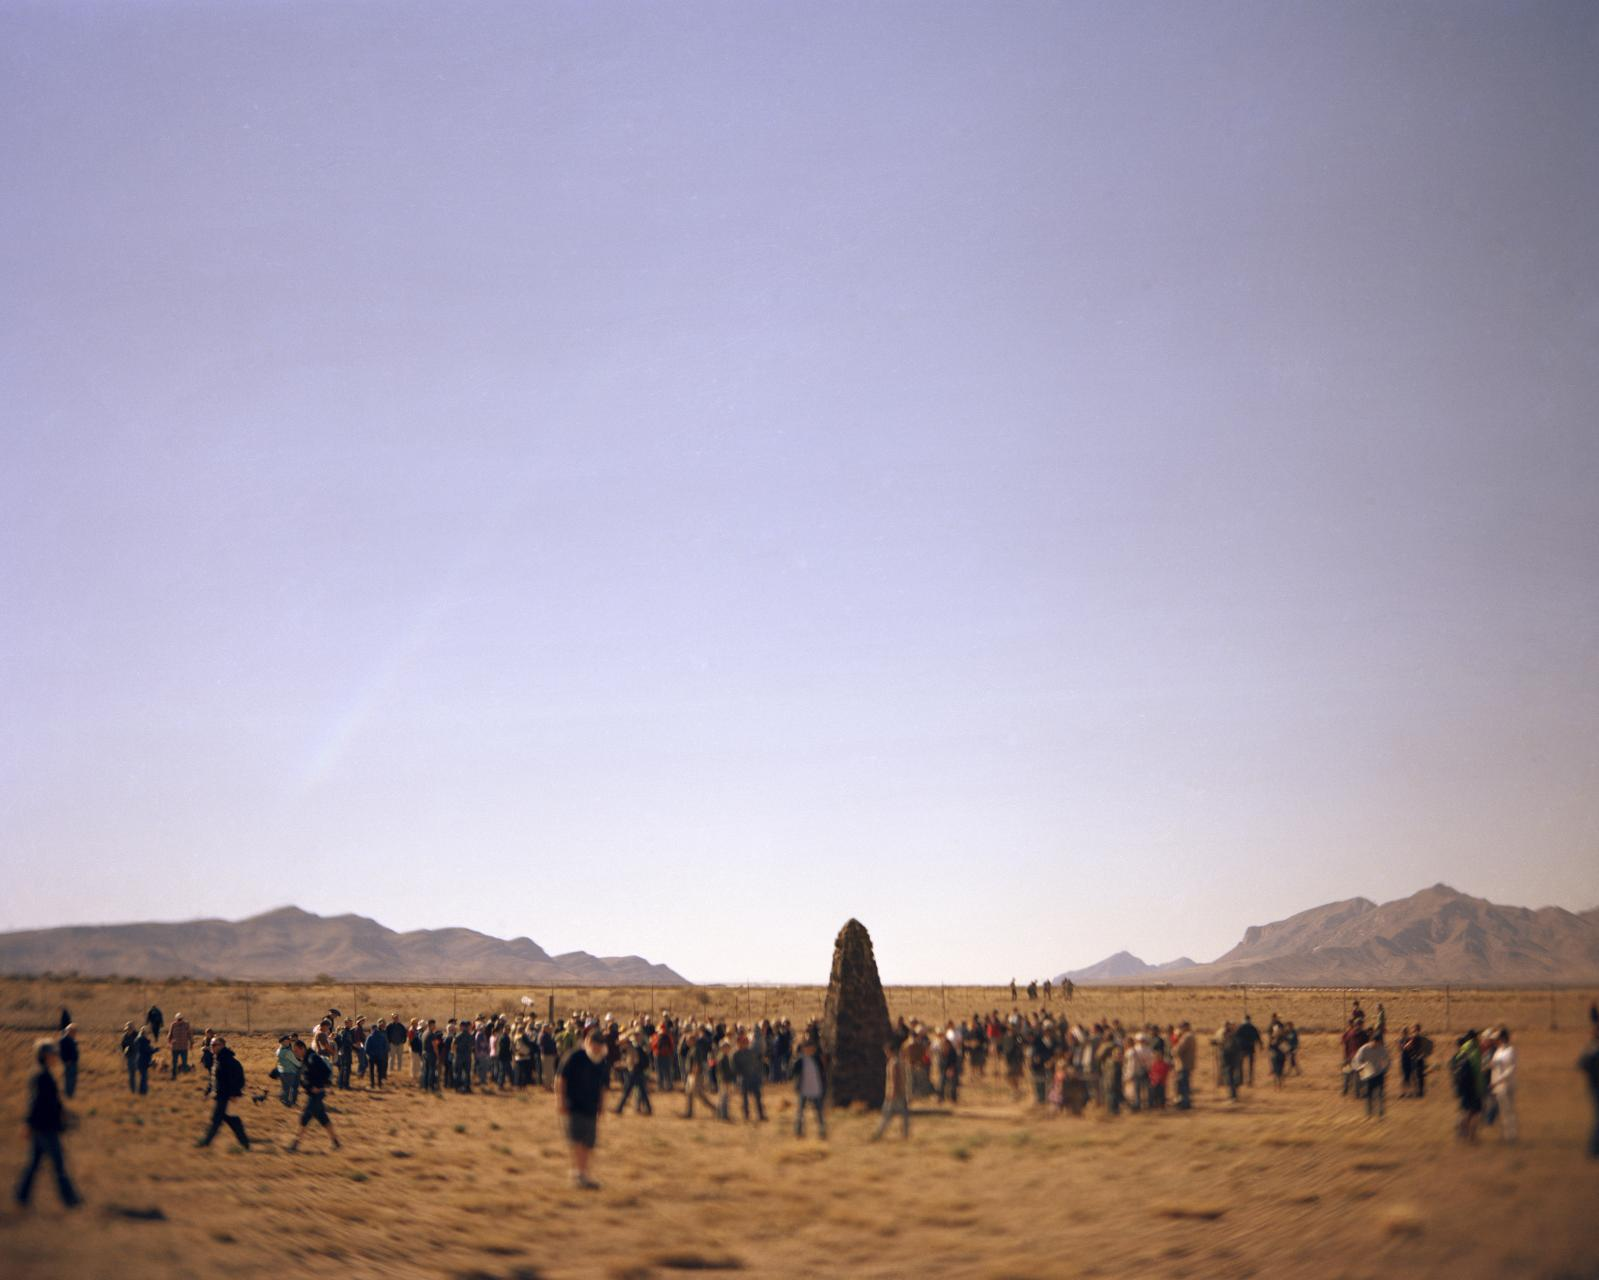 Trinity site, White Sands Missile Range, New Mexico, USA, April 2, 2016  The public gathers around the obelisk monument to the first atomic bomb detonation July 16, 1945.  Radiation spread at least as far as Indiana, and the Wabash River, where Kodak Film Company sourced water for its paper mill to package its film. Customers ended up complaining that their film was fogged and the company secured a pledge form the Atomic Energy Commission to provide Kodak with dates and fallout patterns for future tests, thereby notifying corporate America, but not the American people, of the radiation risk. Today the site is a closed military zone opened only two days a year to public. Higher than normal radiation levels are still detected and residents of New Mexico claim that they have suffered cancer for generations as a result of the test but have never been compensated.